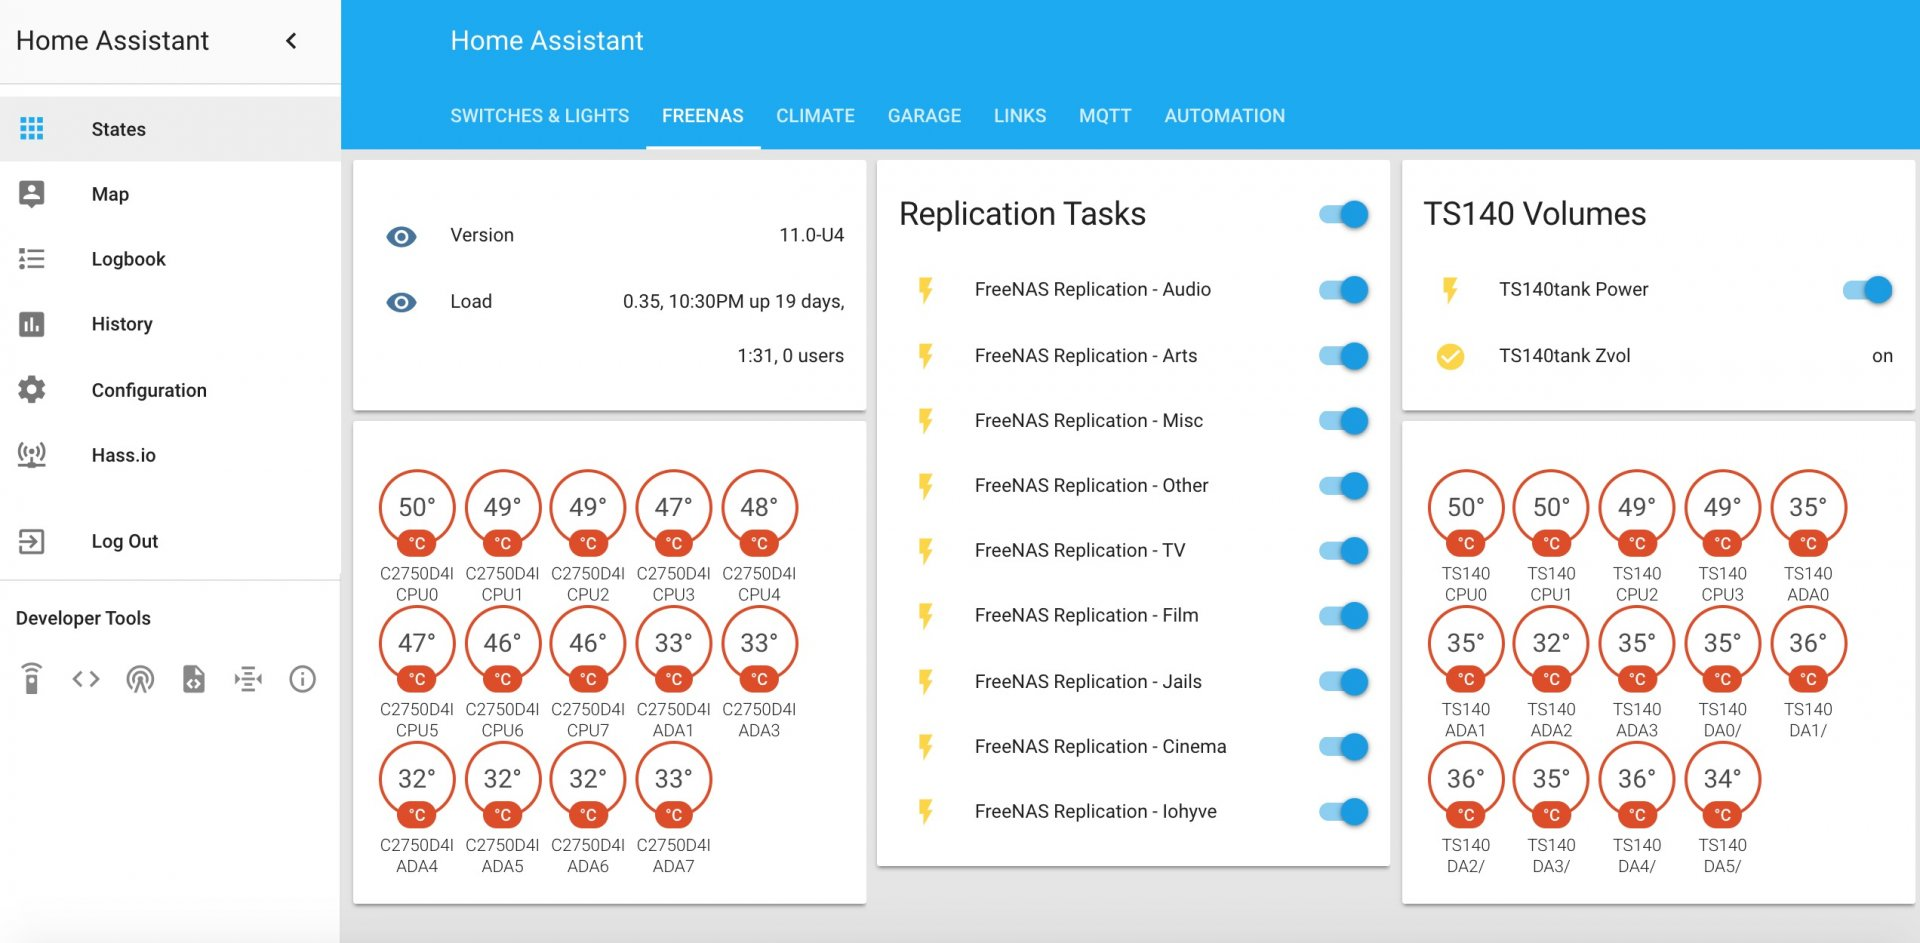 Home Assistant and FreeNAS | iXsystems Community